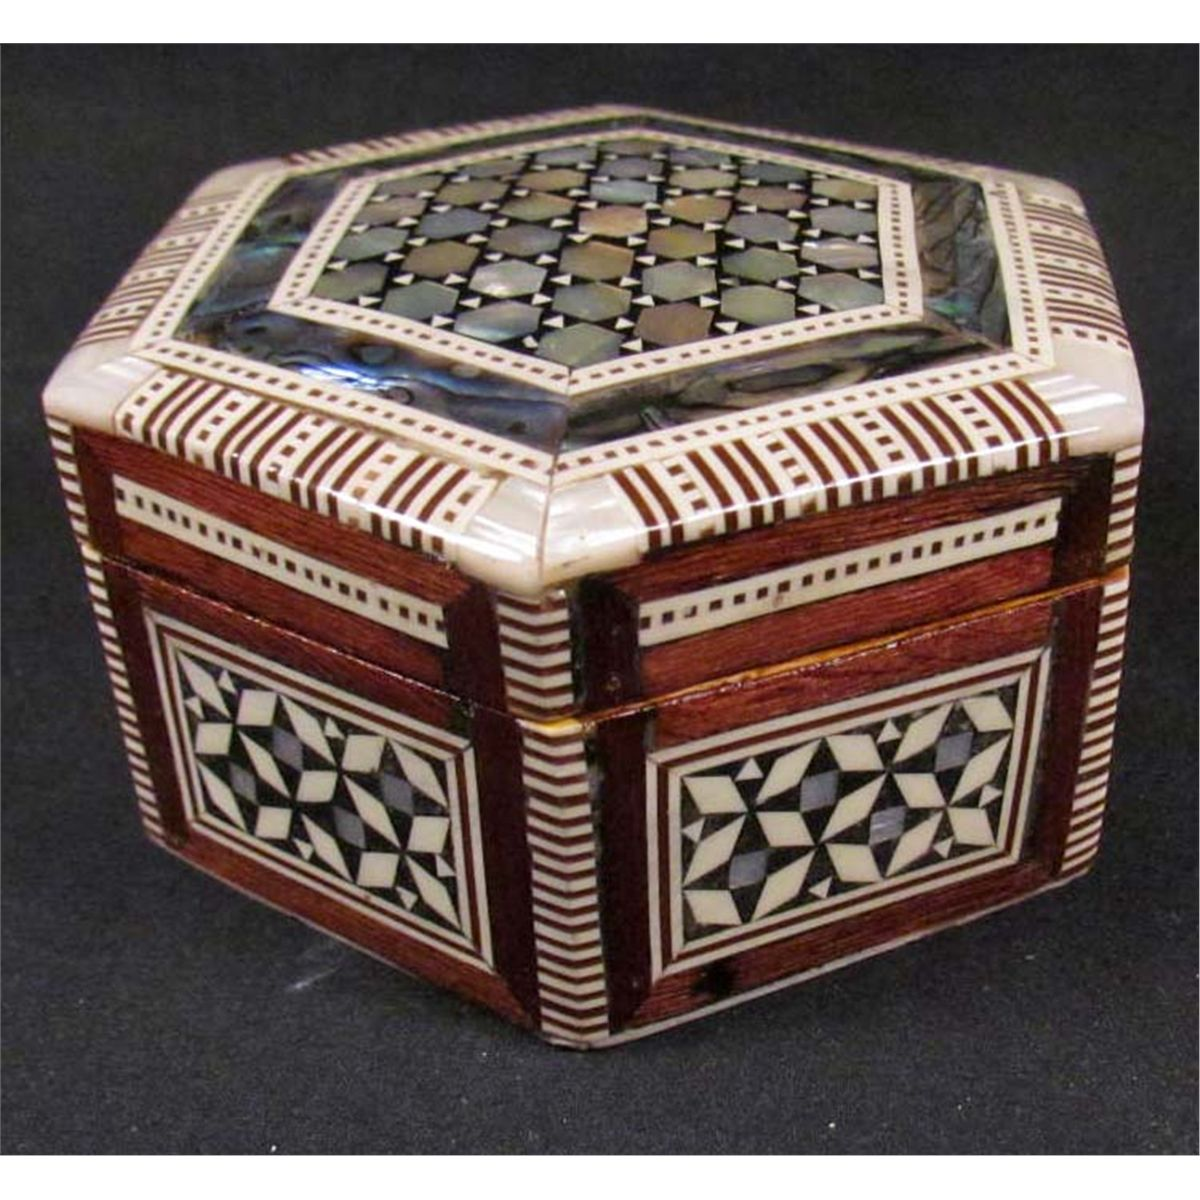 EGYPTIAN HEXAGON JEWELRY BOX INLAID W MOTHER OF PEARL